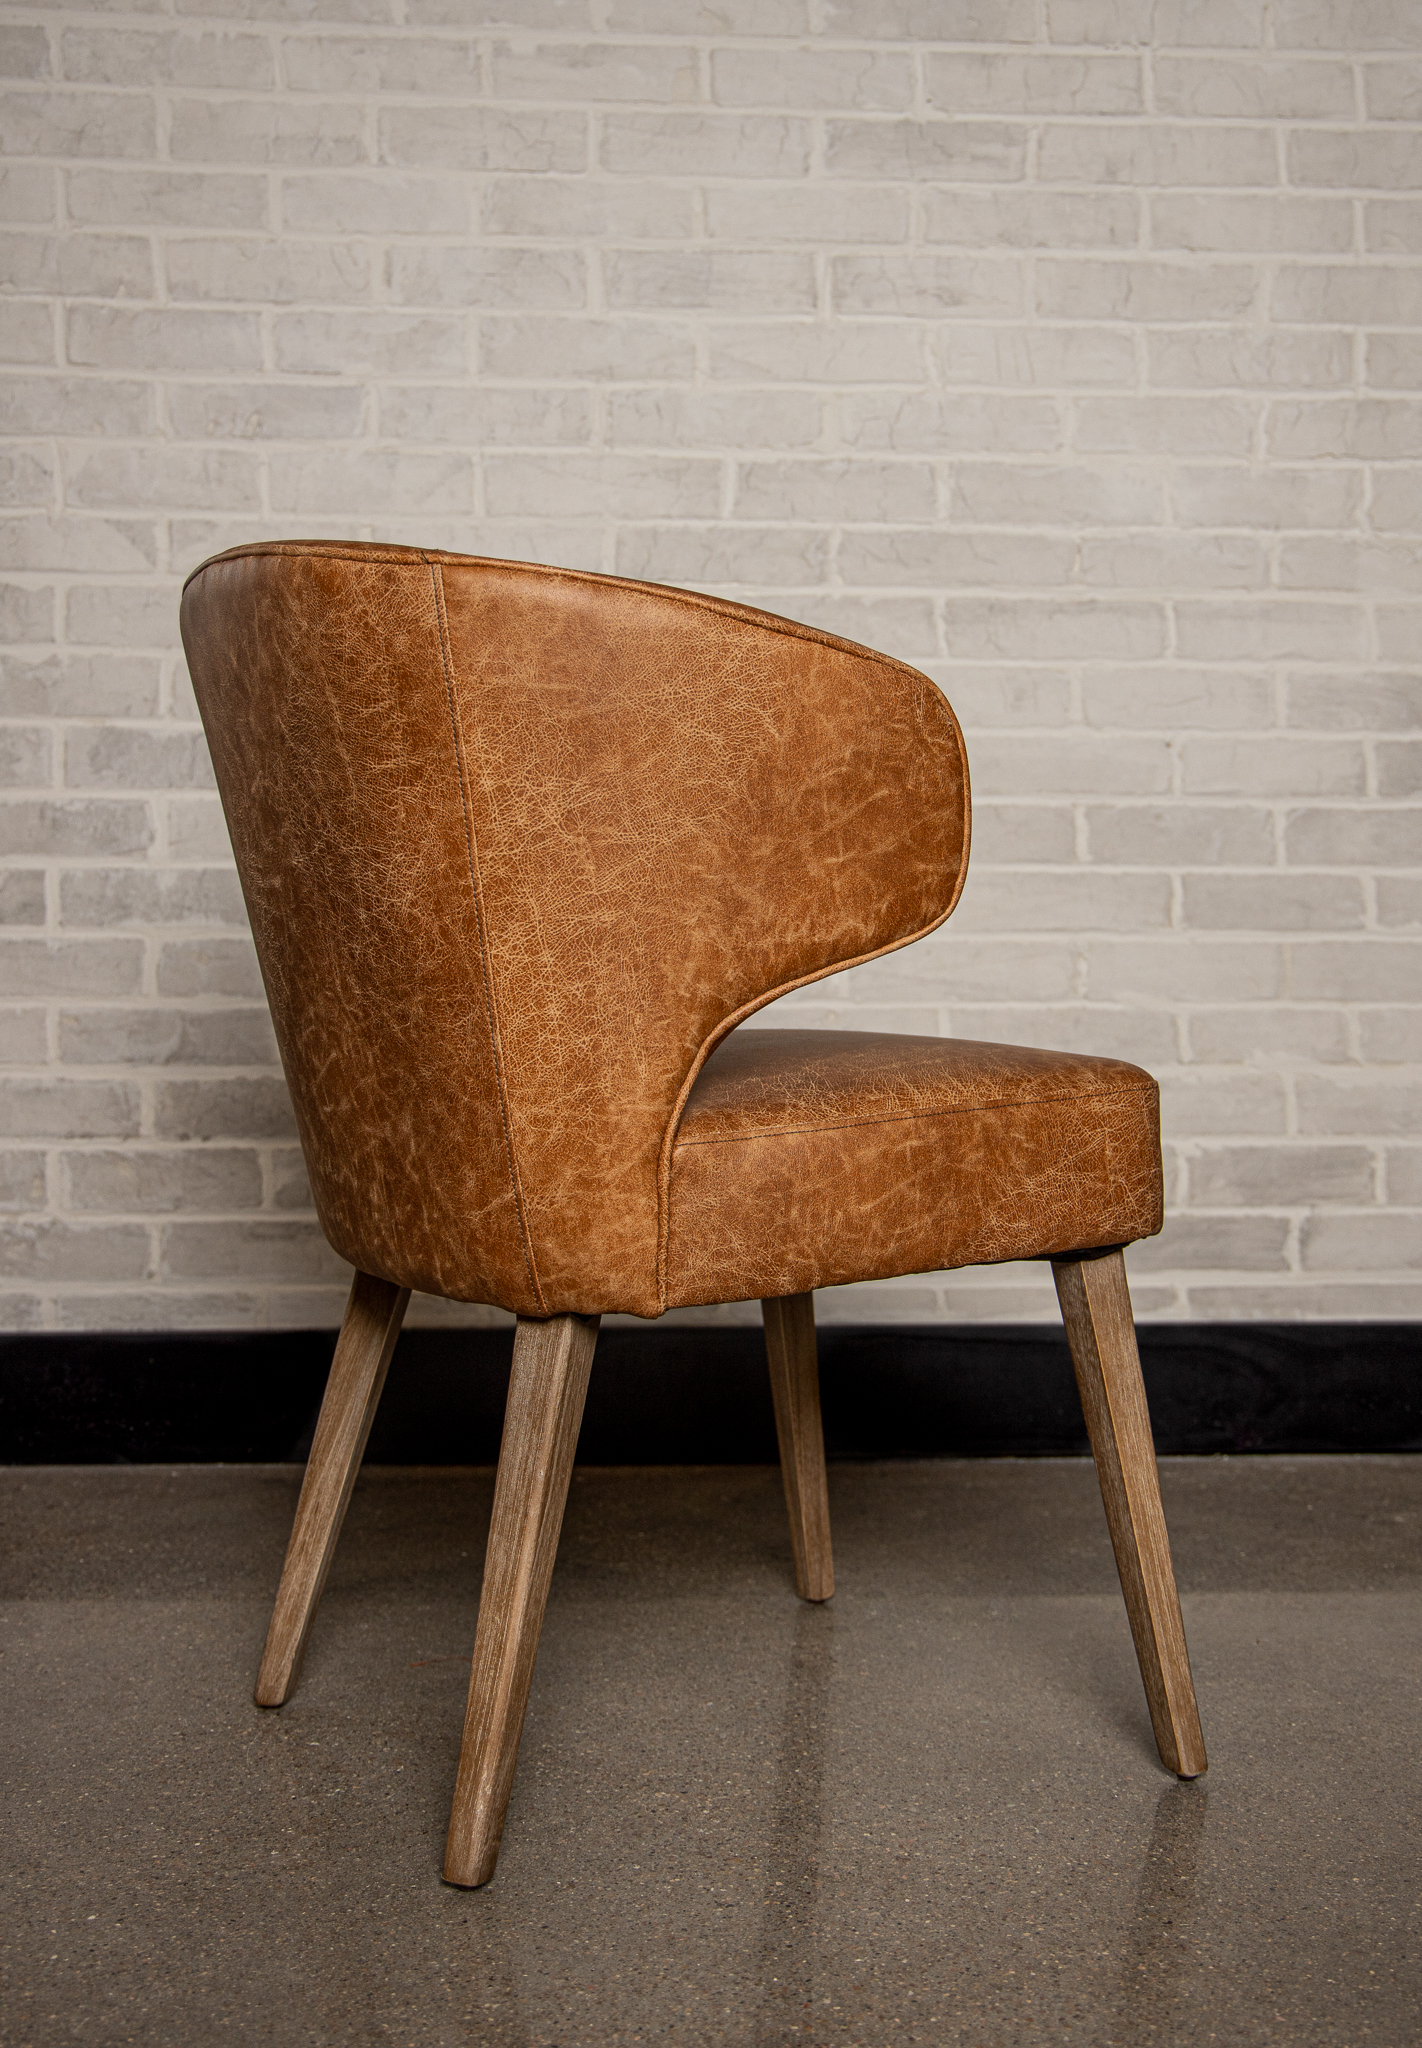 Curvy Leather Chair